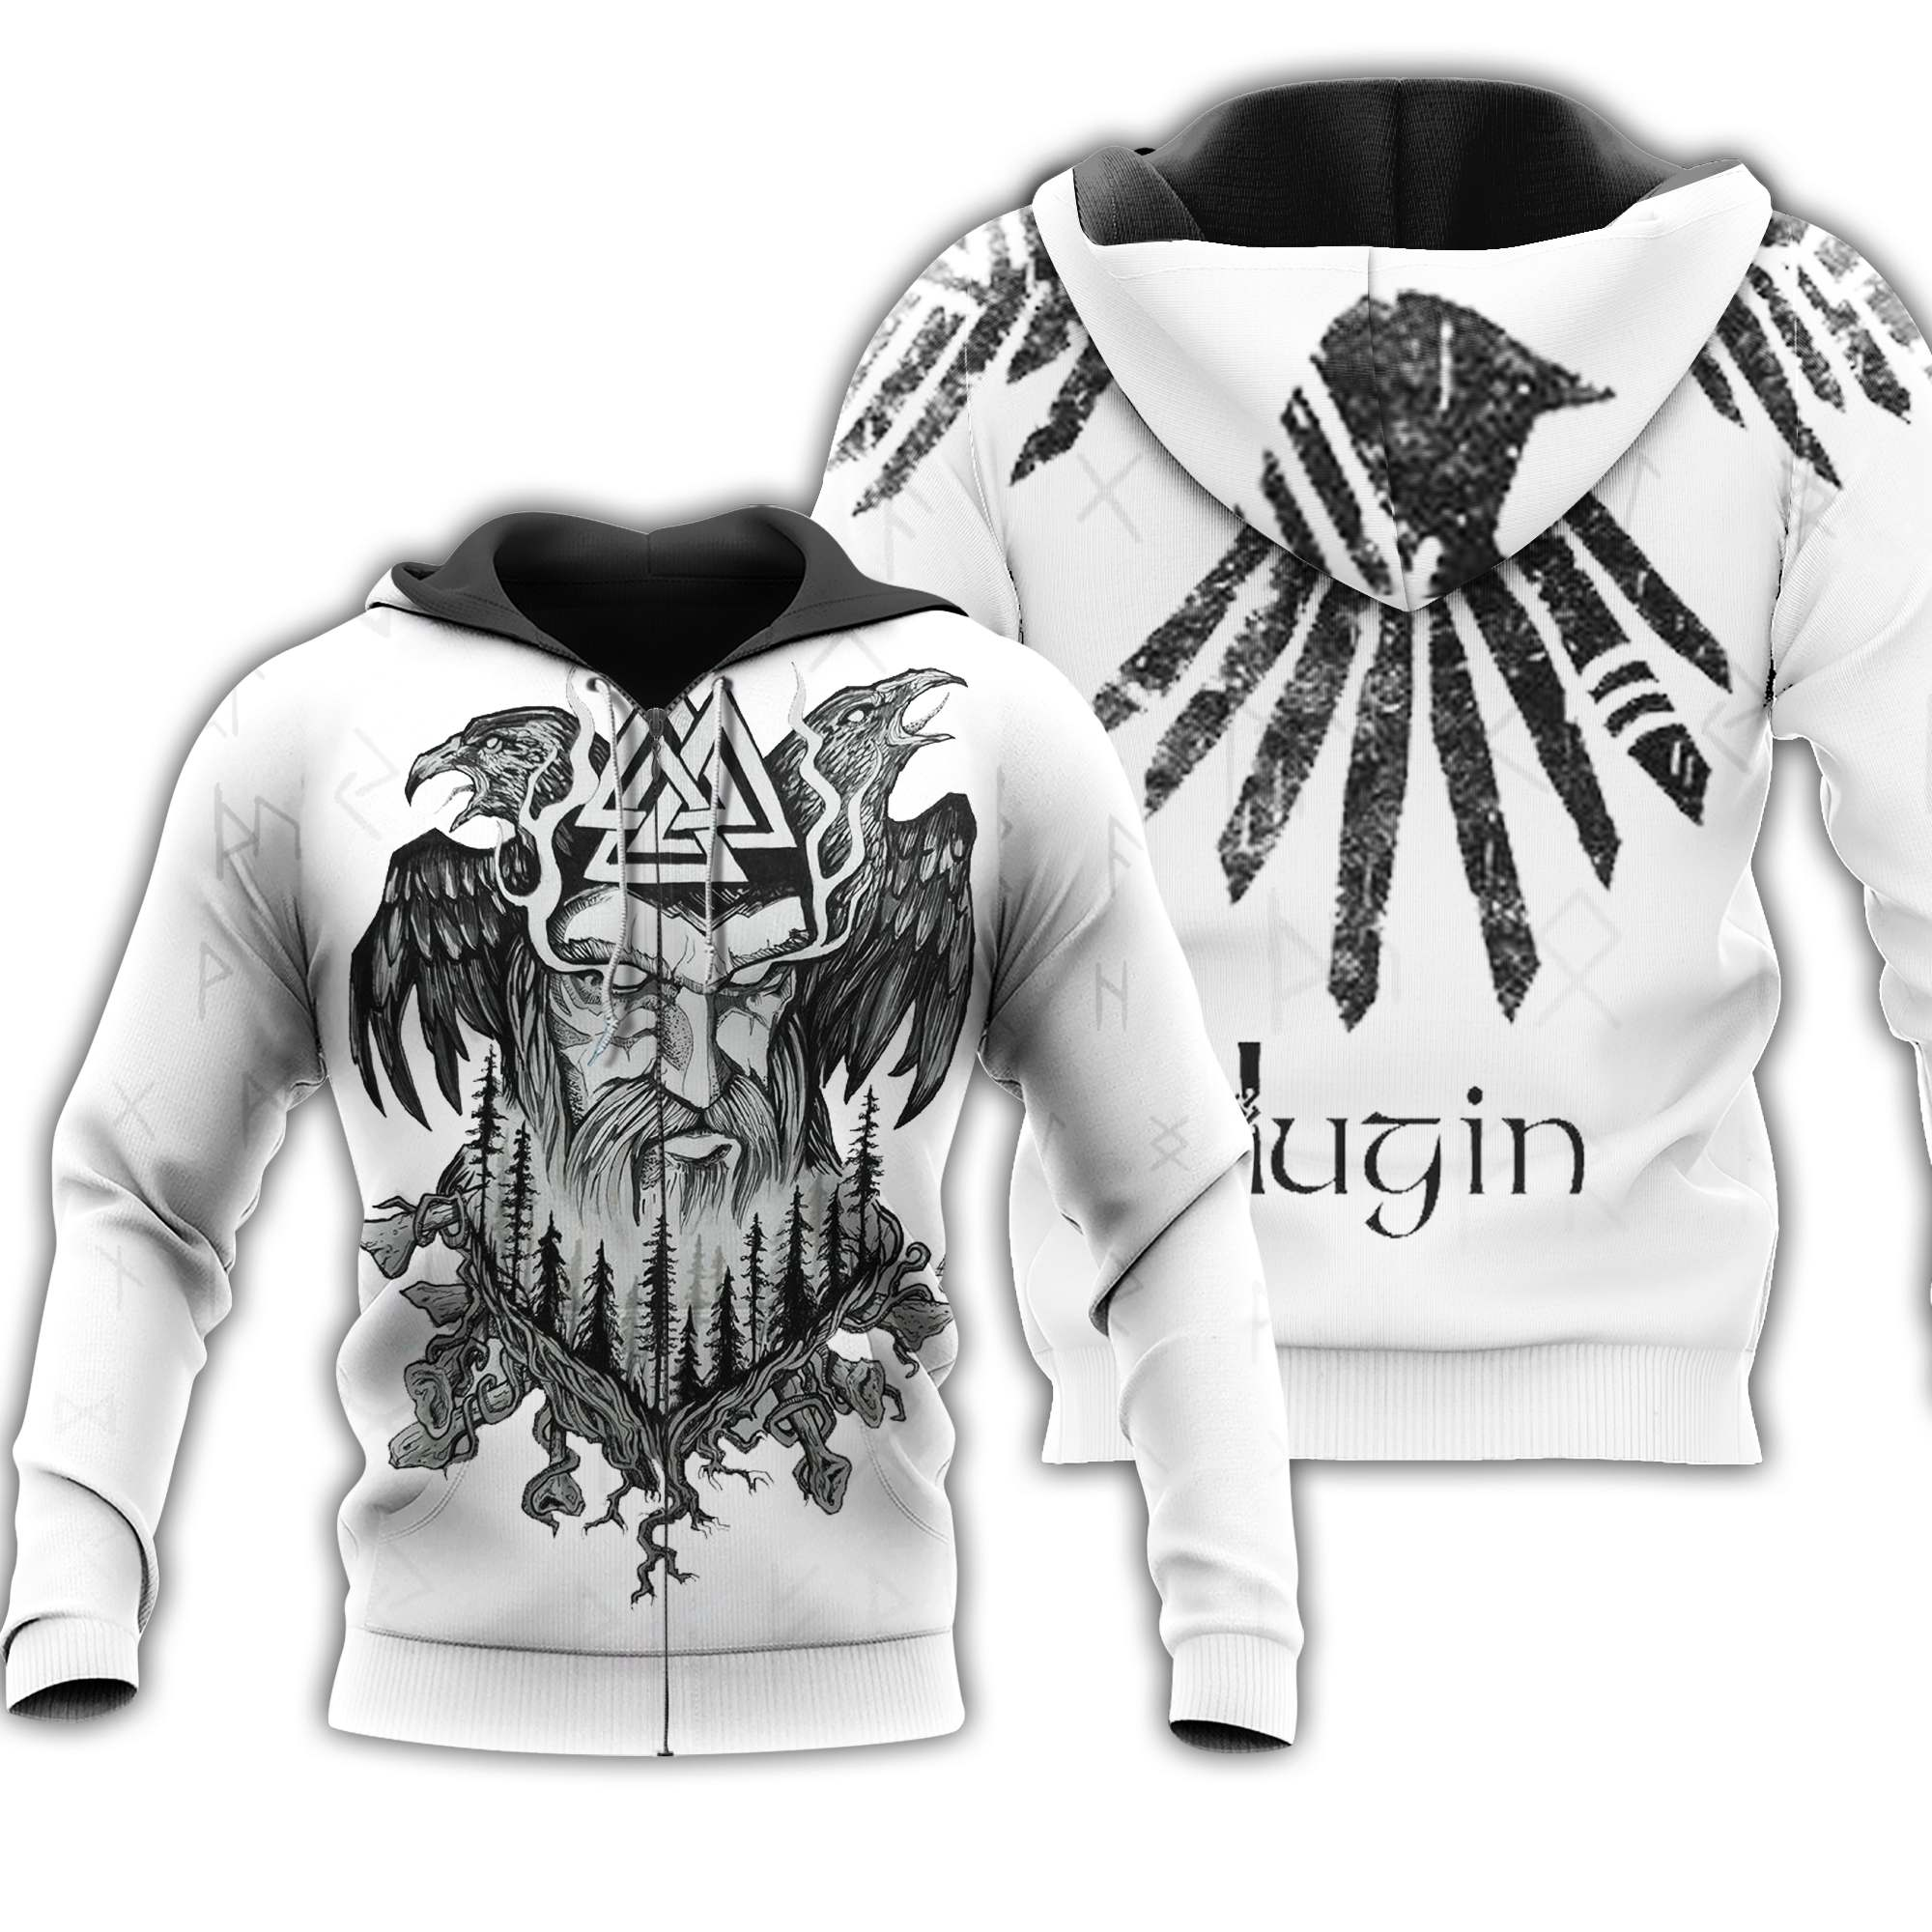 Odin & Hugin 3D All Over Printed Shirts For Men And Women 76